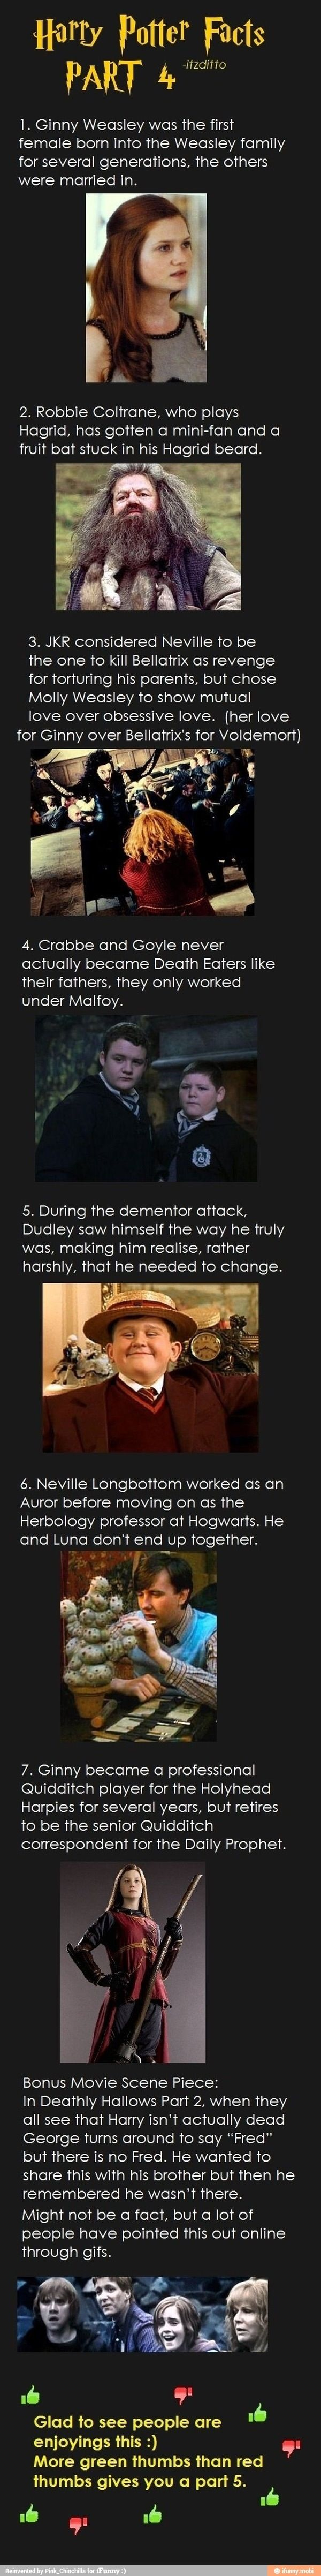 Harry Potter Fact 6 makes me sad... | I always wanted Luna and Neville together too, and somehow him to become like the next Dumbledore